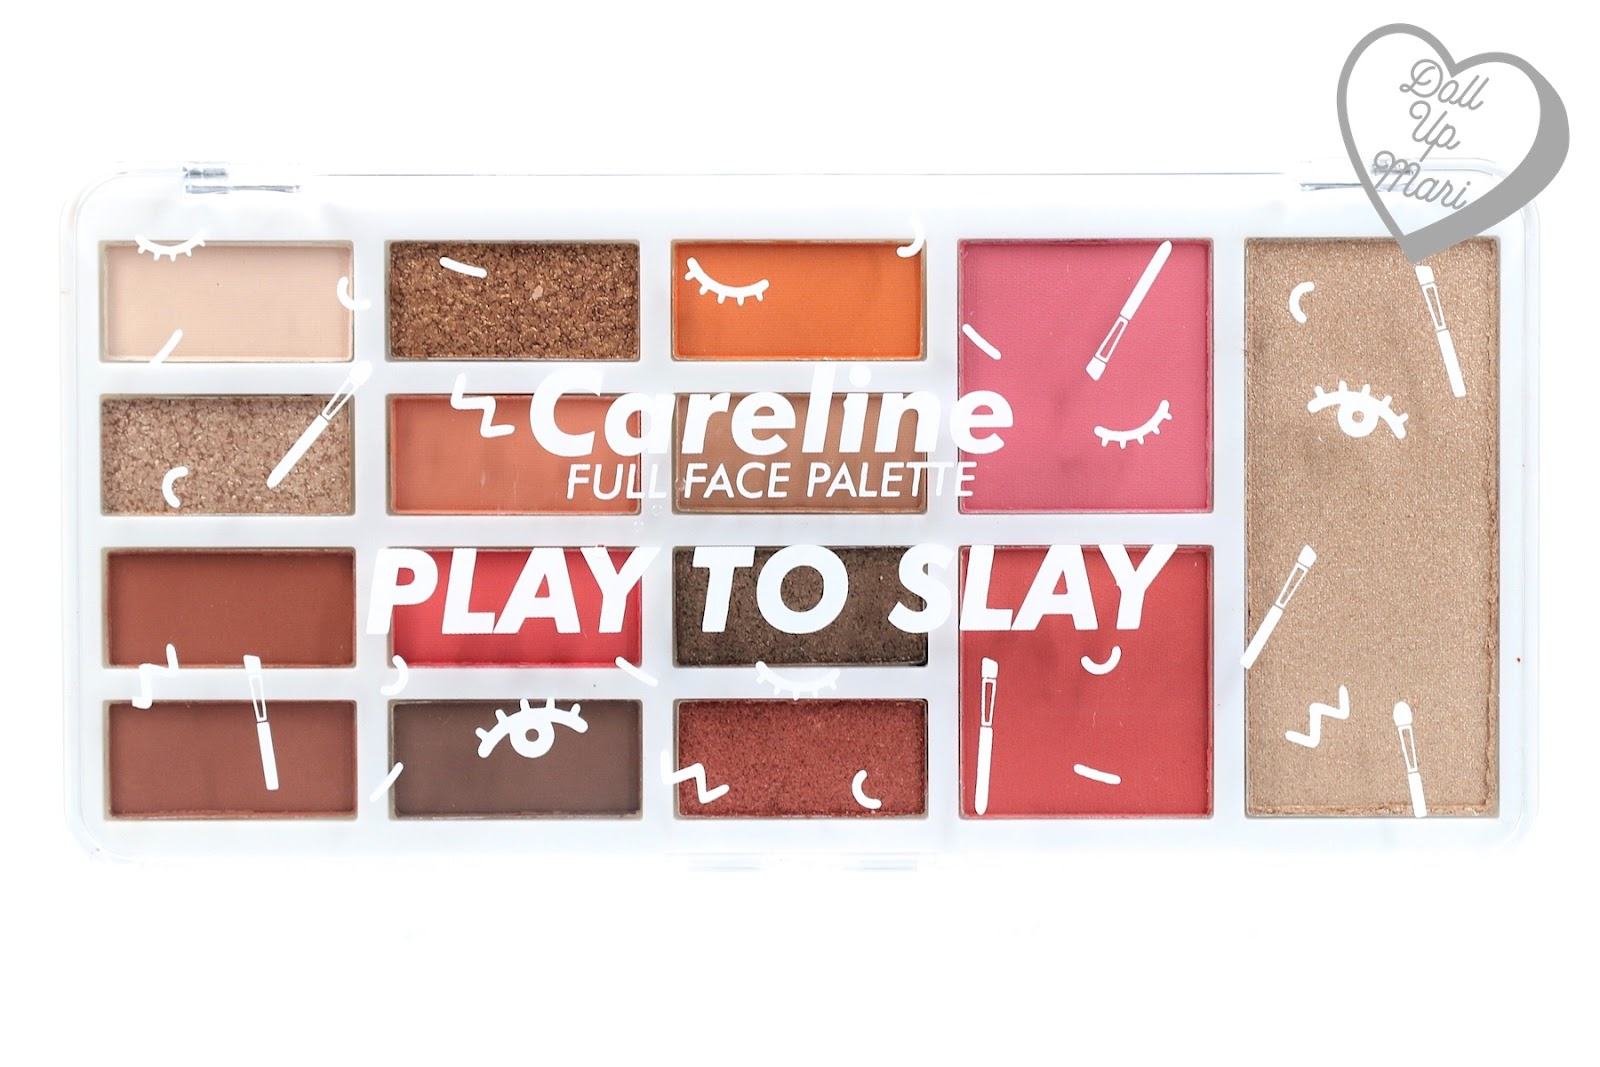 Careline Play To Slay Palette